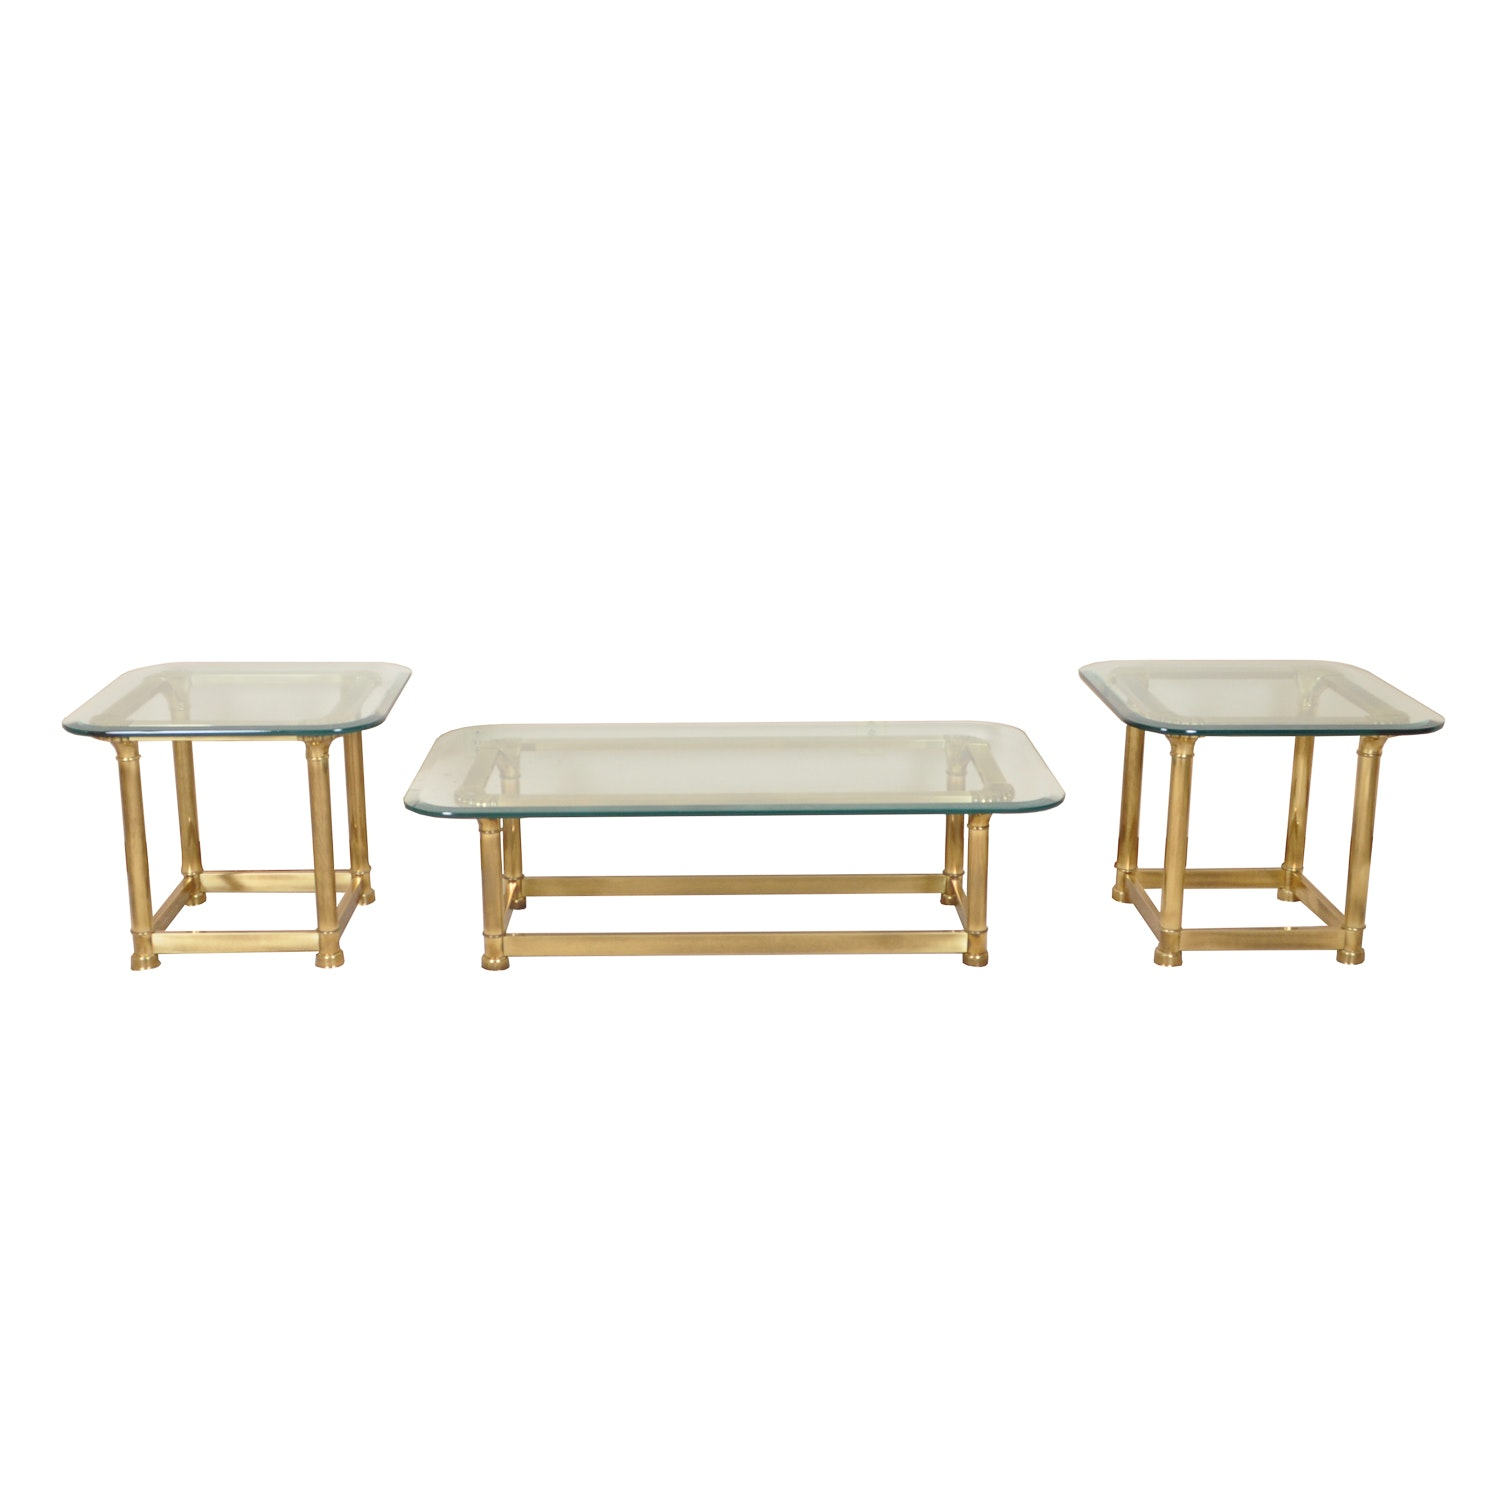 Glass Top Brass Coffee Table With Matching End Tables ...